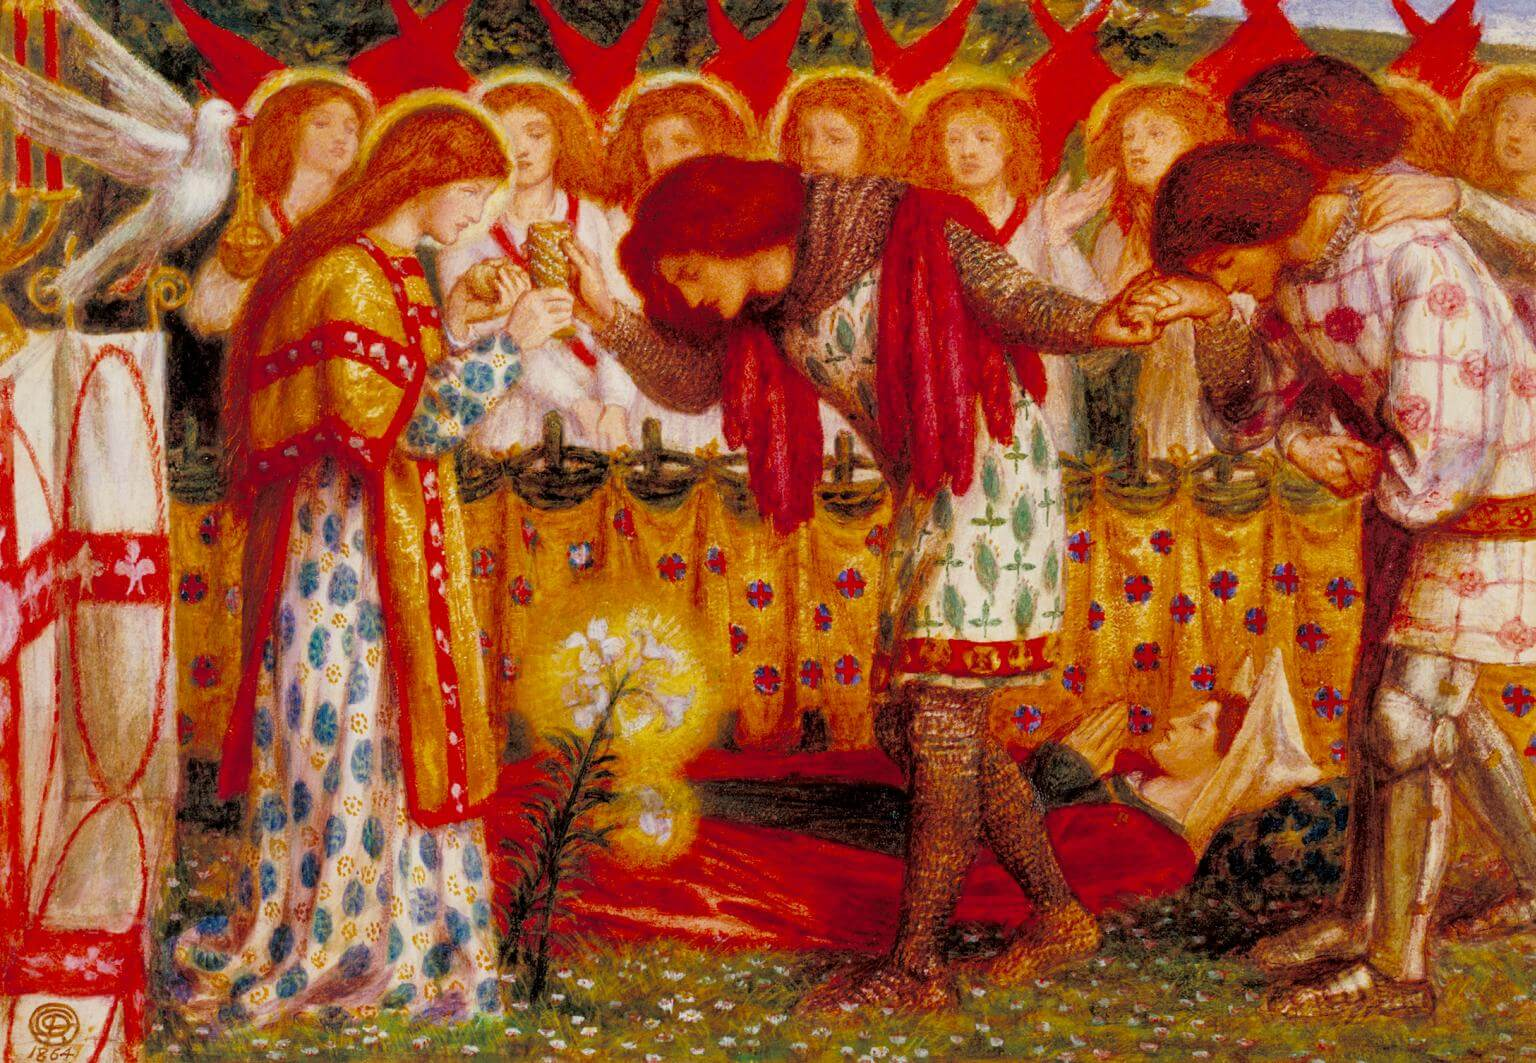 Sir Galahad, Sir Bors and Sir Percival by Dante Gabriel Rossetti knights